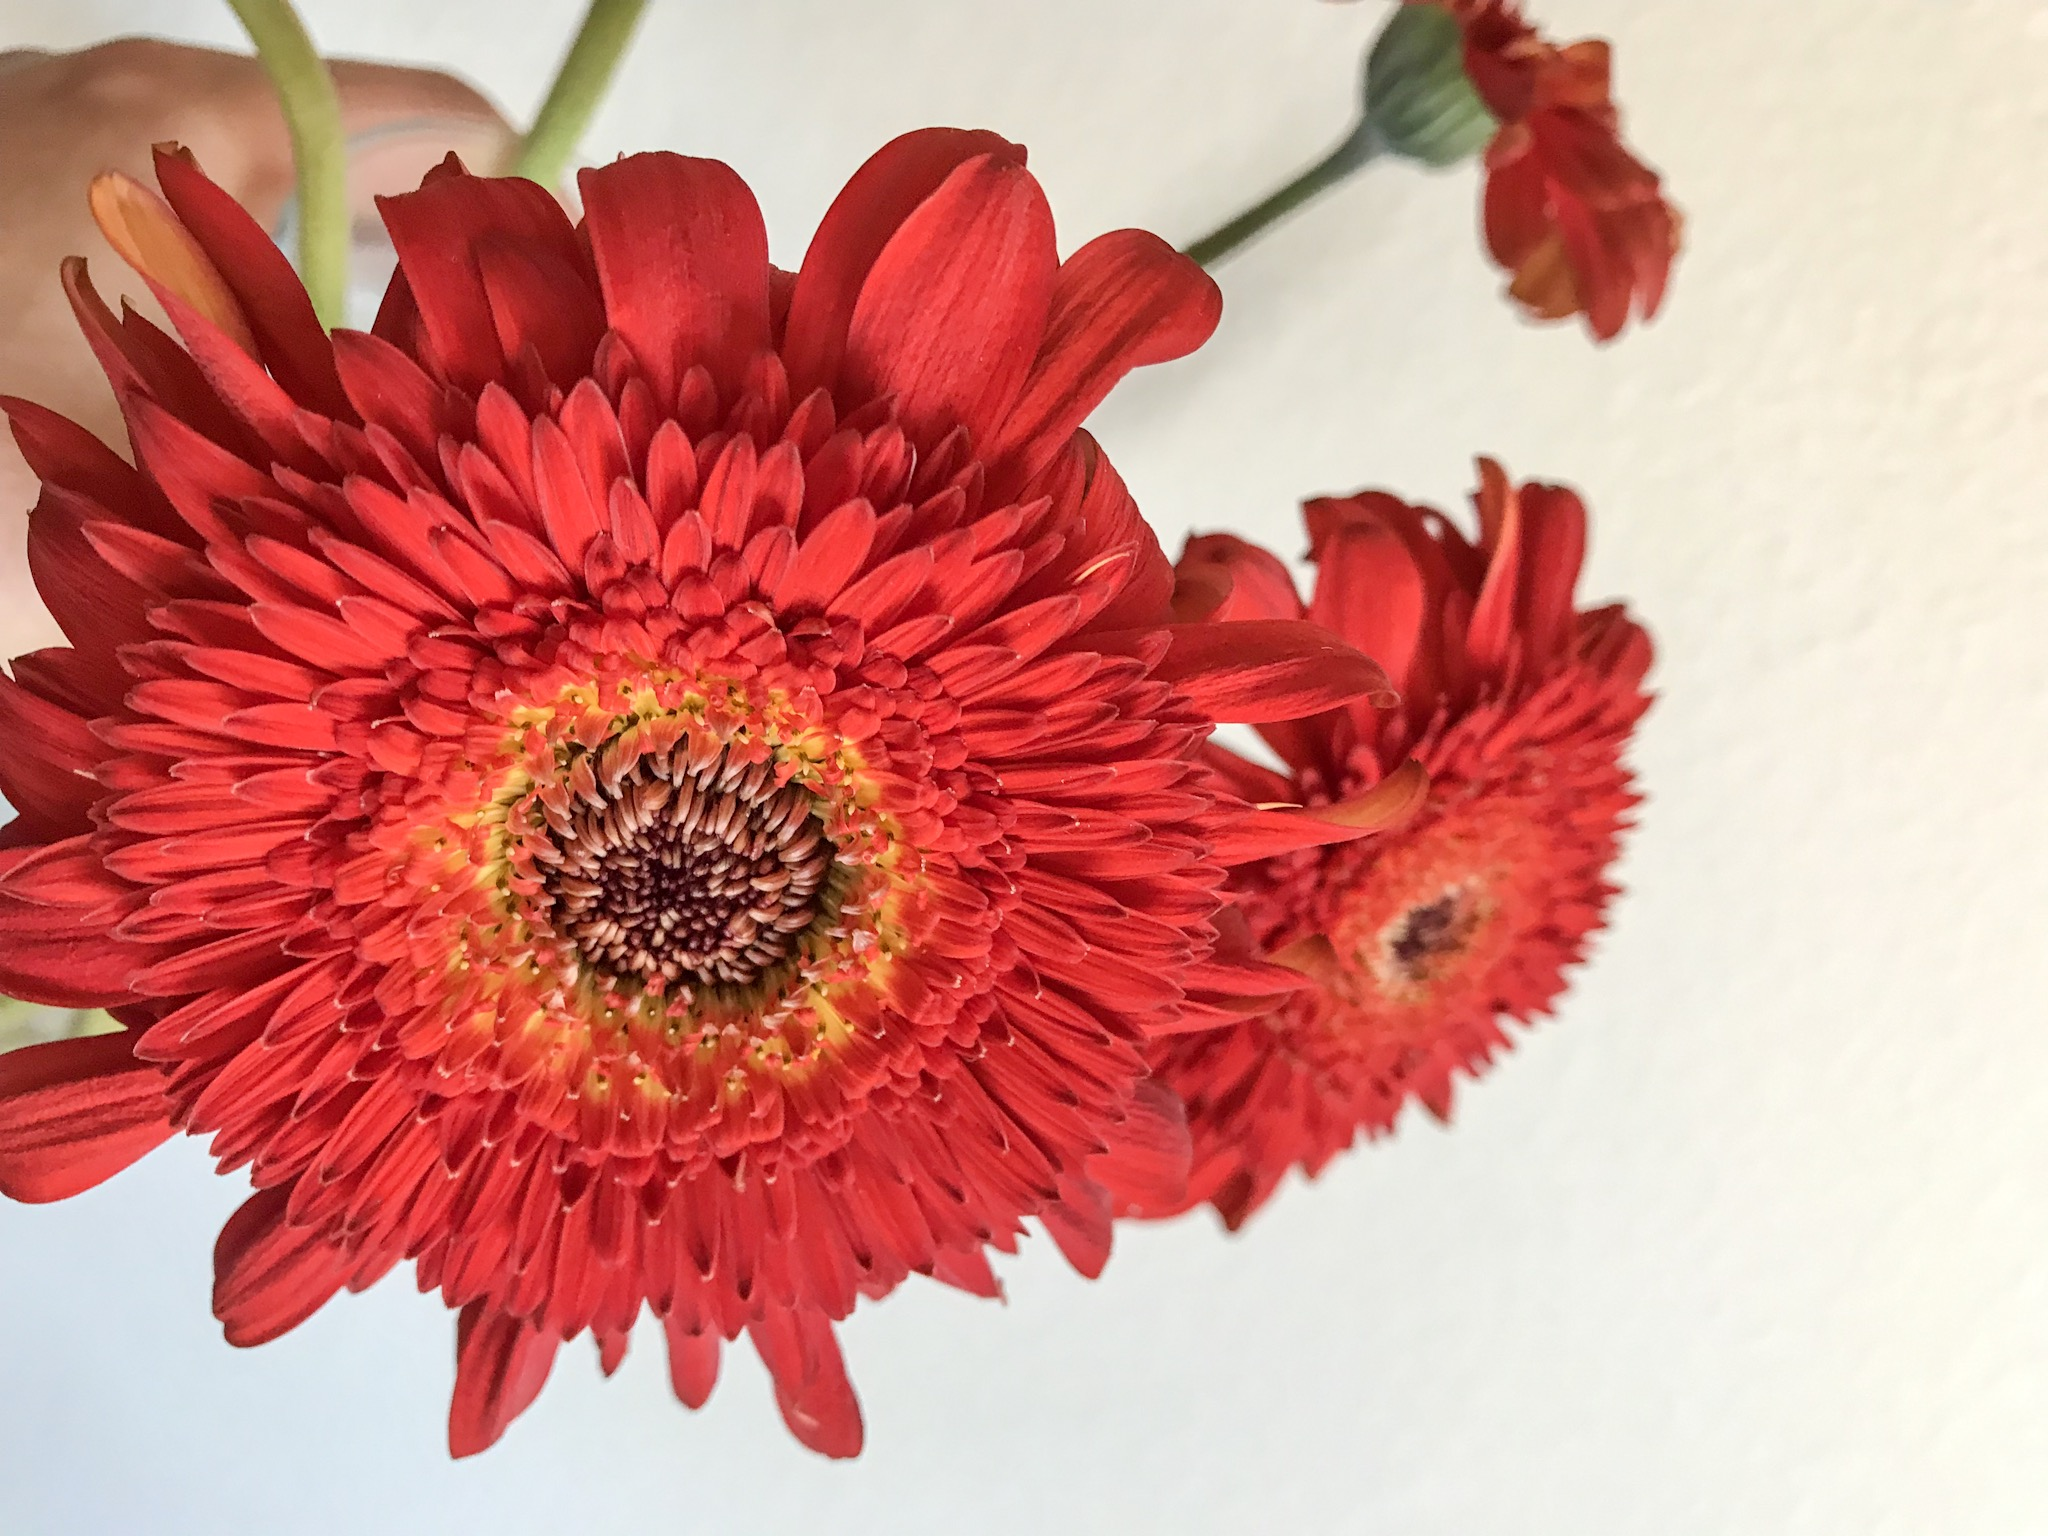 Red Gerber Daisies against a white wall